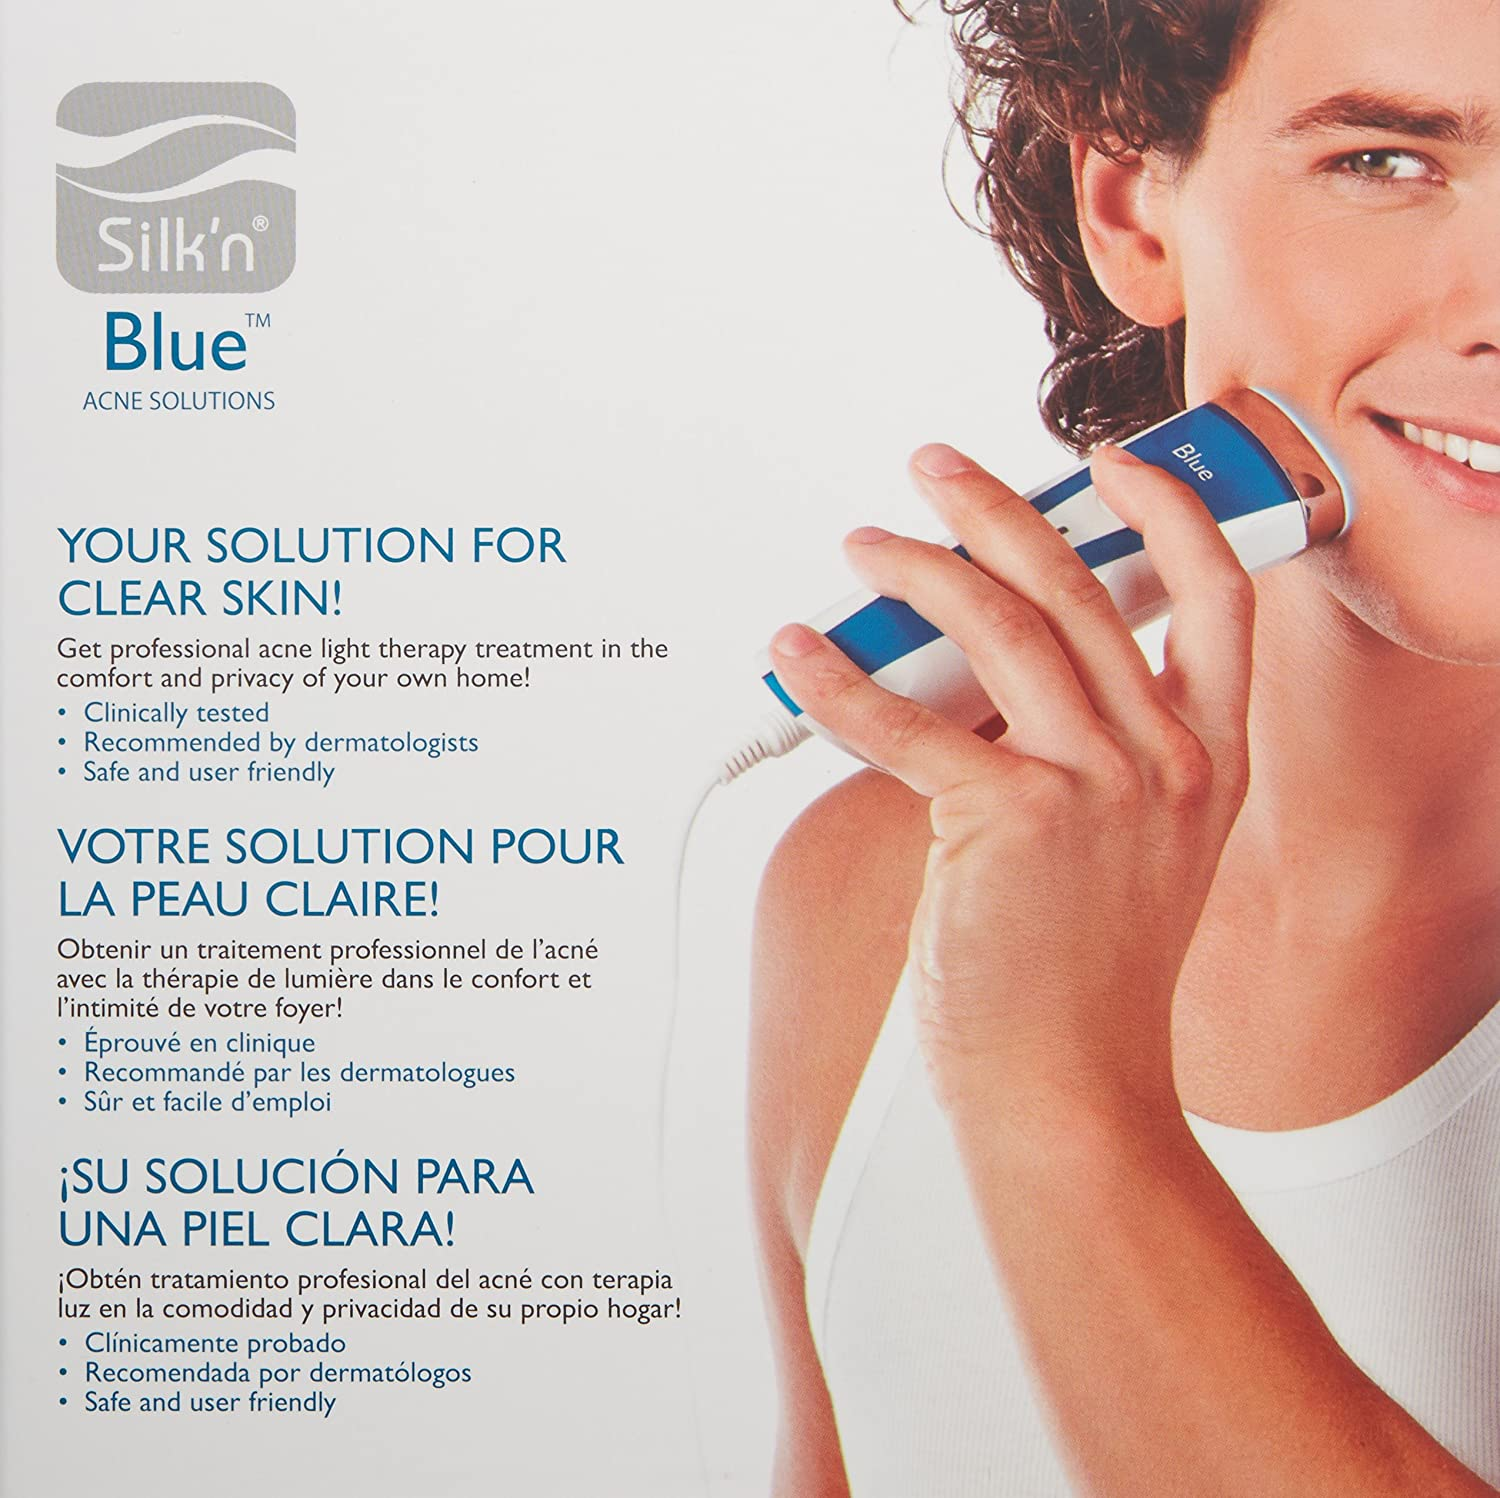 Amazon.com: Silk\'n Blue - Acne Solution Device - Clinically Proven ...